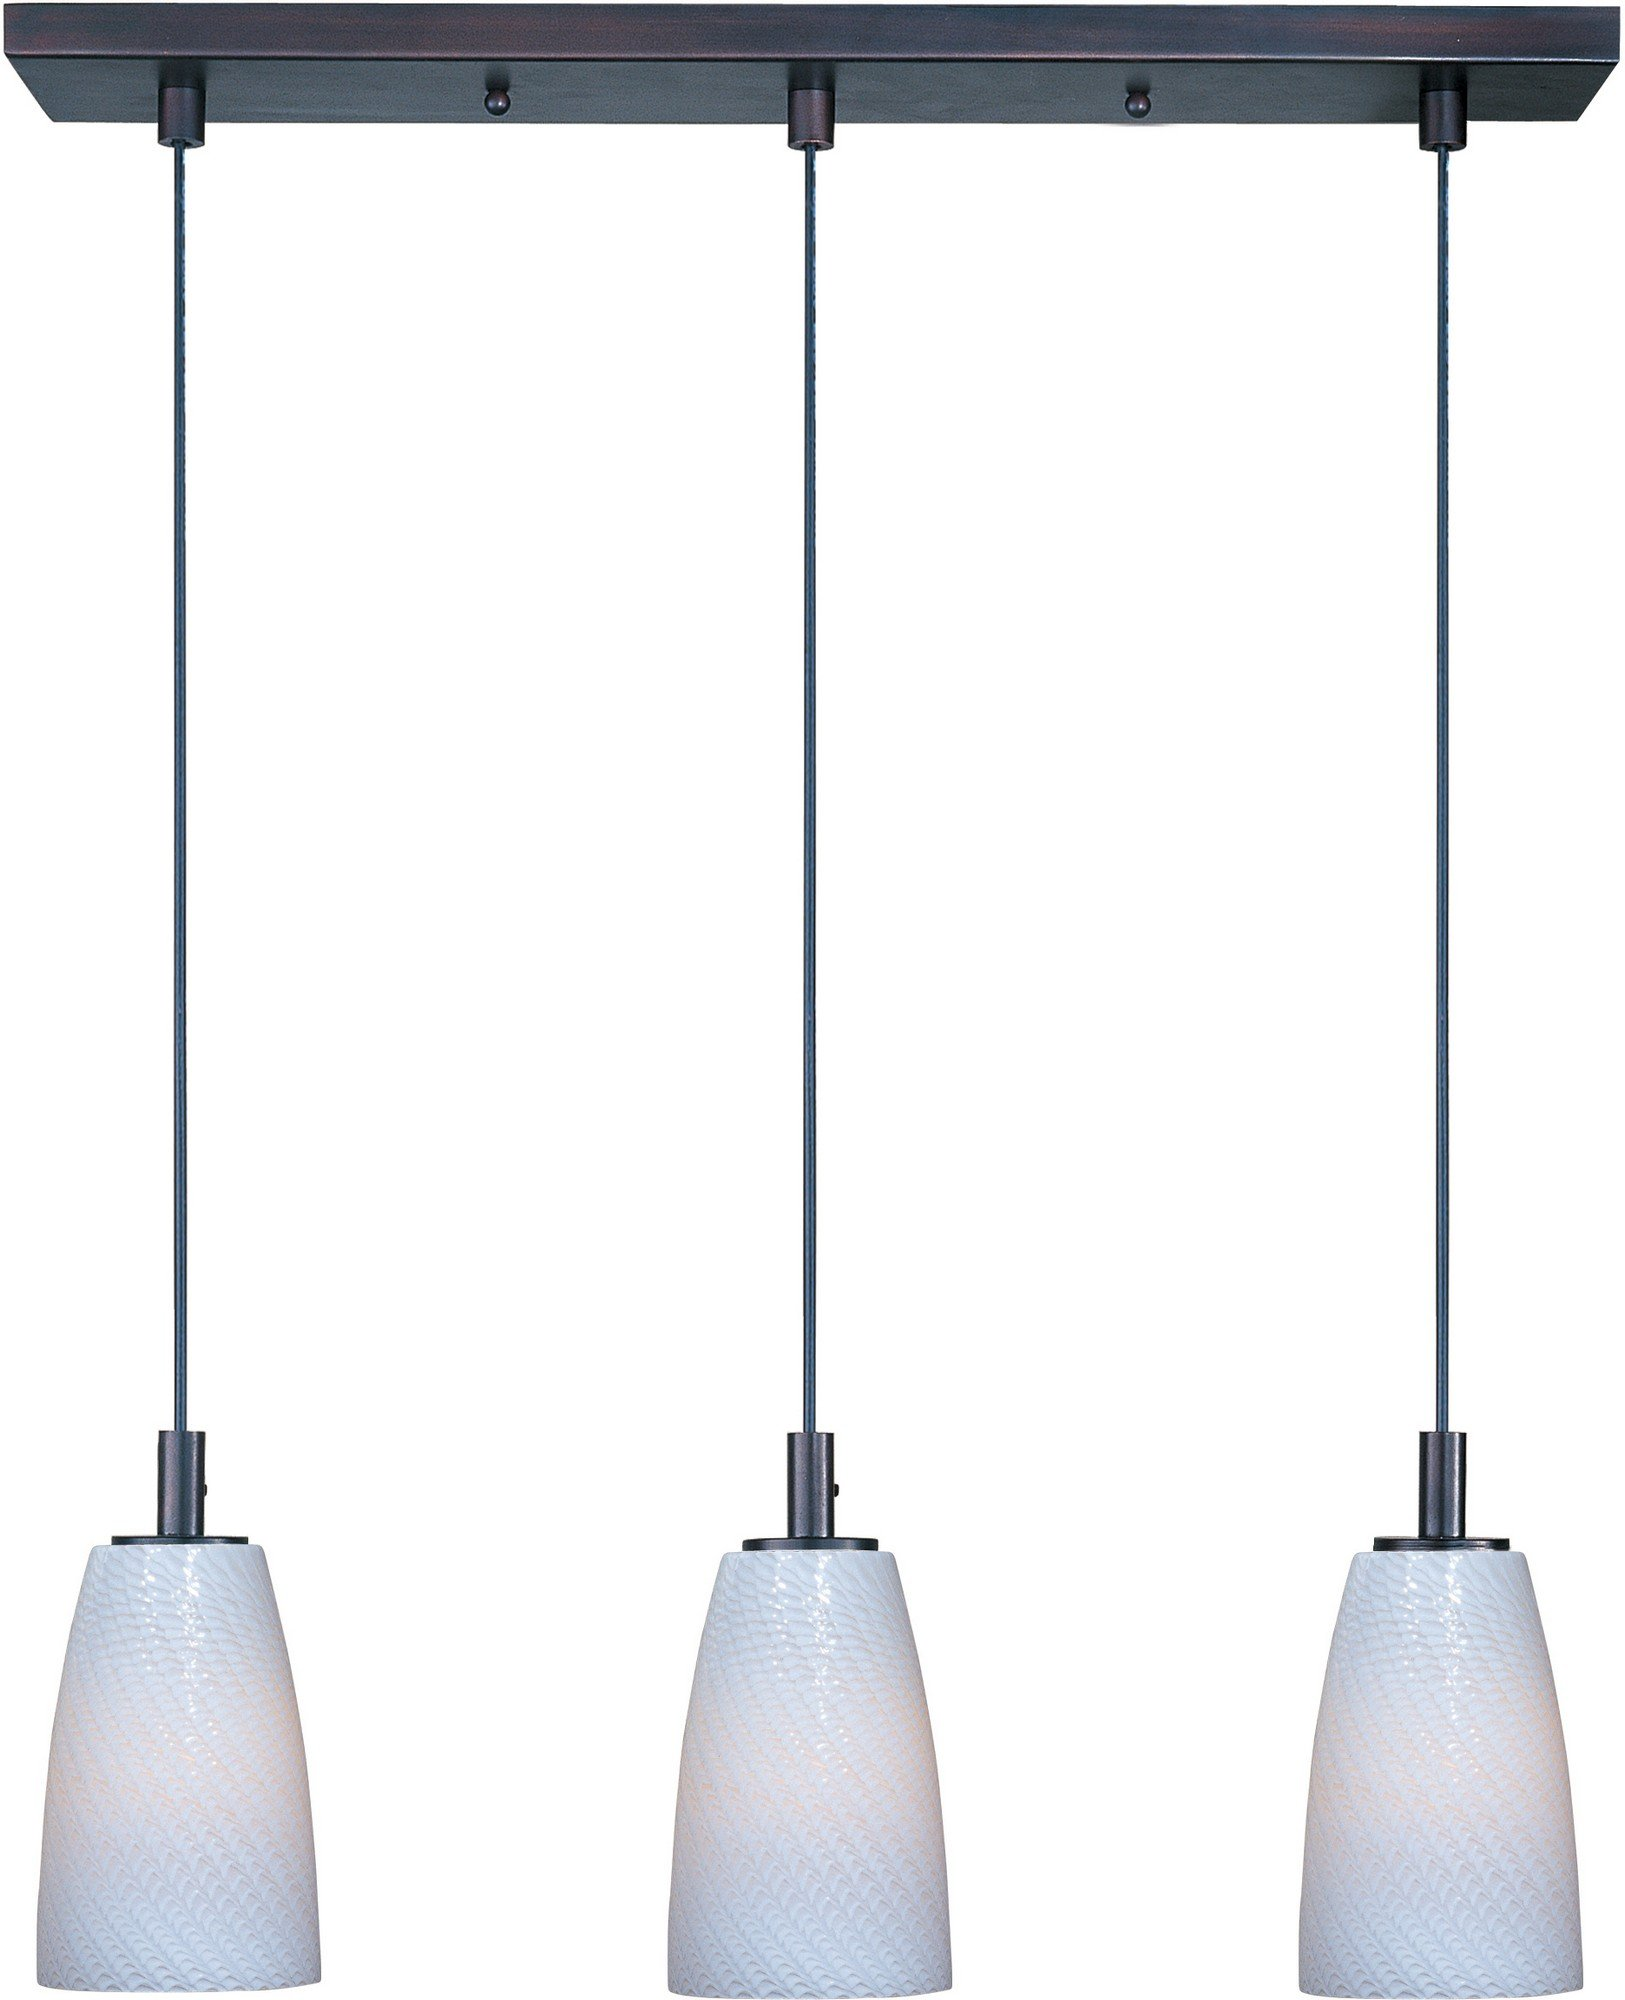 ET2 E92043-13BZ Carte 3-Light Linear Pendant, Bronze Finish, White Ripple Glass, MB Incandescent Bulb, 7.25W Max., Dry Safety Rated, Shade Material, 1150 Rated Lumens by ET2 Lighting